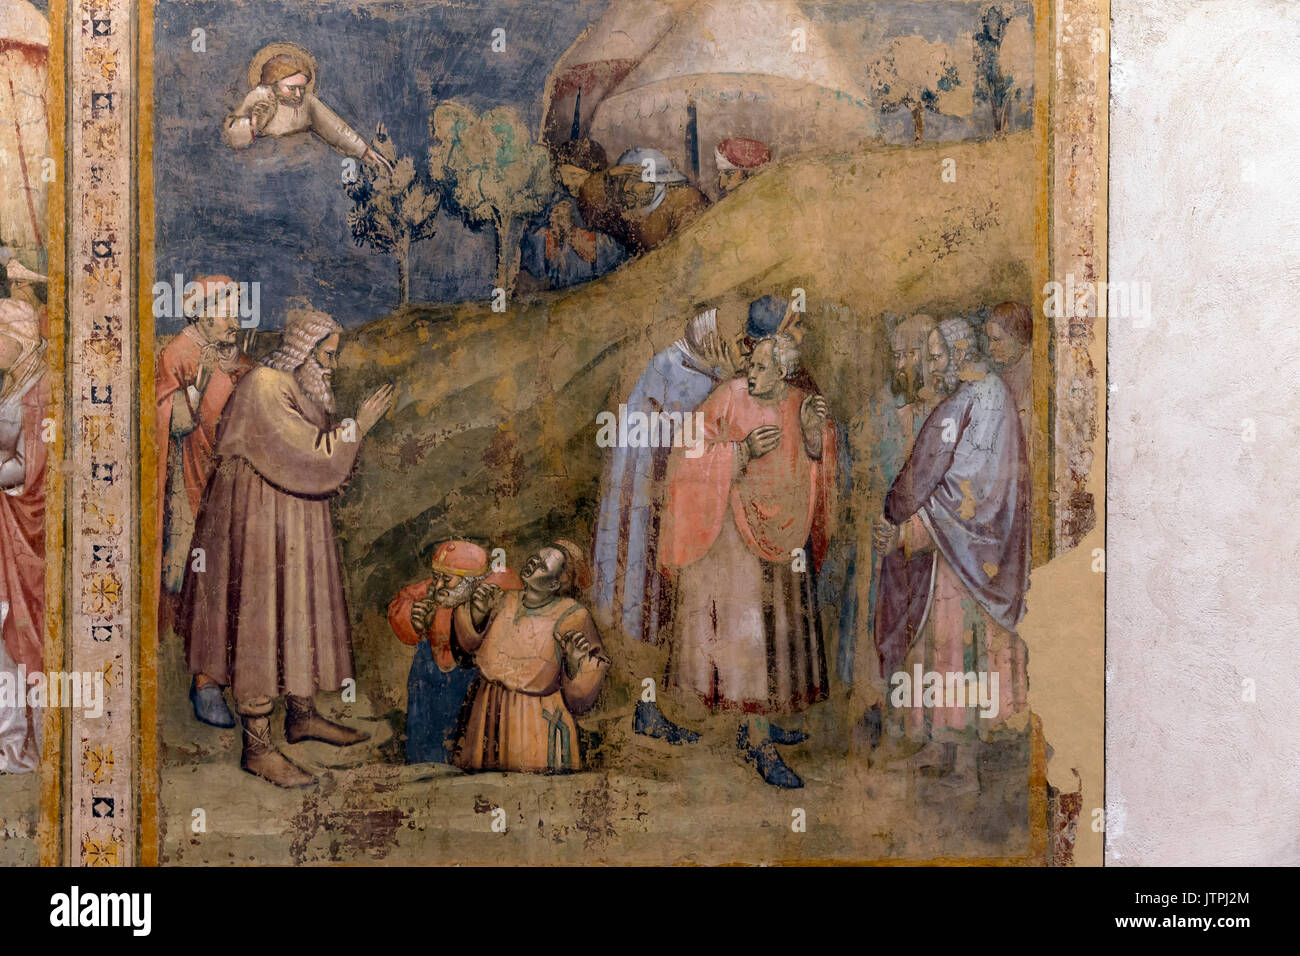 Old Testament Frescoes, by Simone dei Crocifissi, from Chiesa di S. Apollonia Mezzaratta, 1366, National Art Gallery of Bologna, Pinacoteca Nazionale  - Stock Image